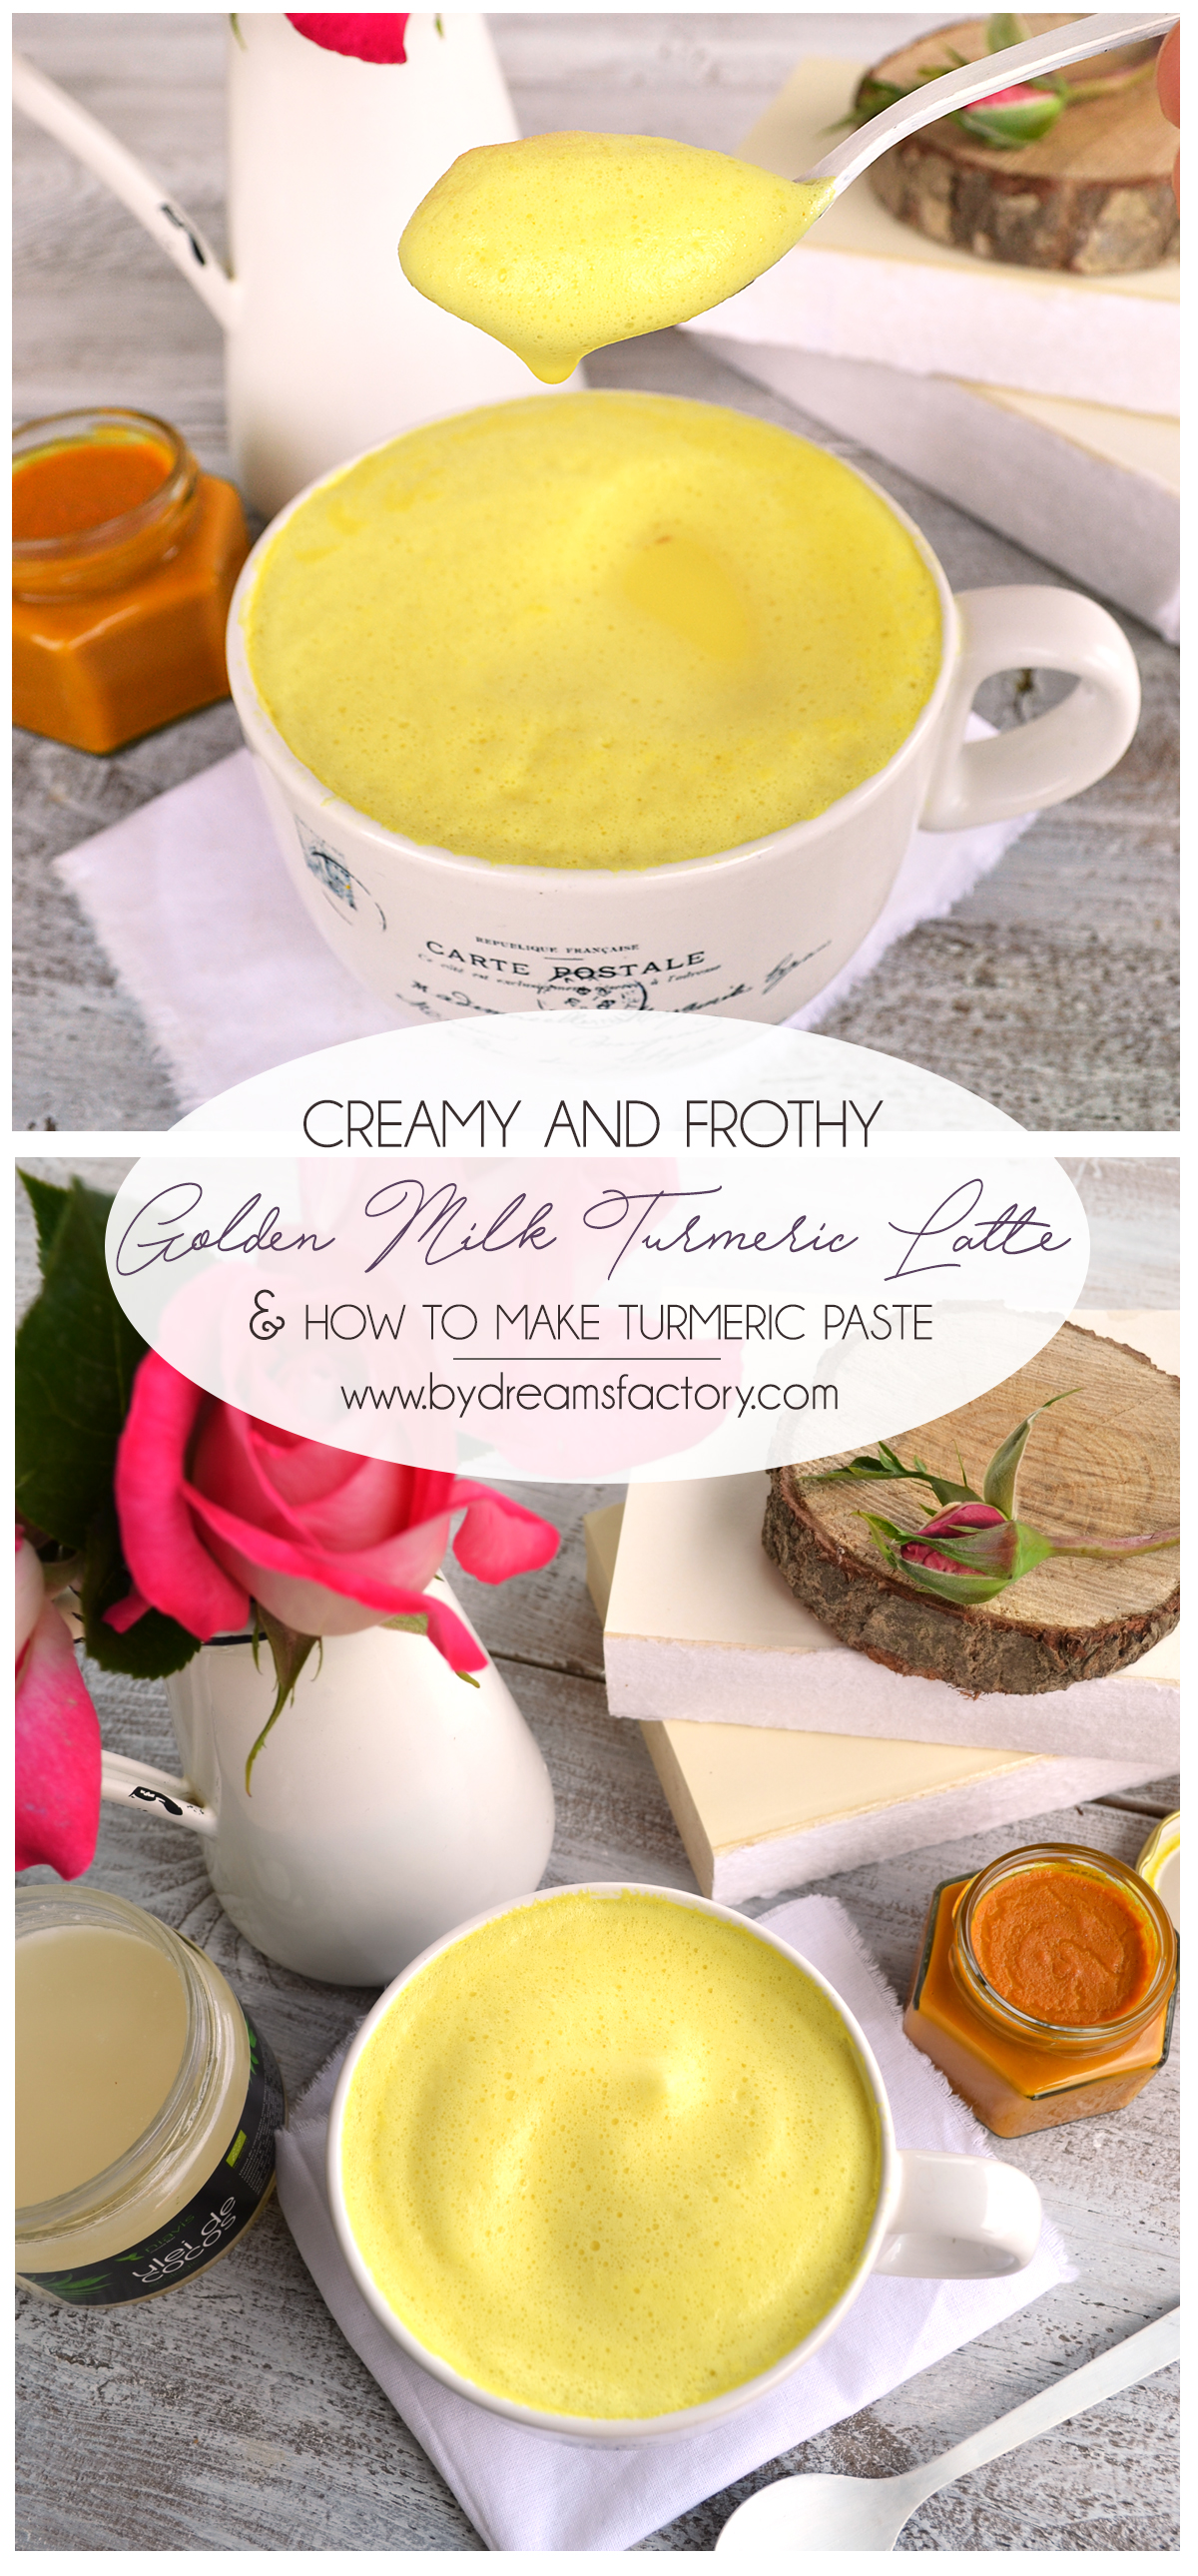 Try this creamy and frothy golden milk turmeric latte (from turmeric paste), a comforting drink with anti inflammatory healing properties & an amazing taste @bydreamsfactory